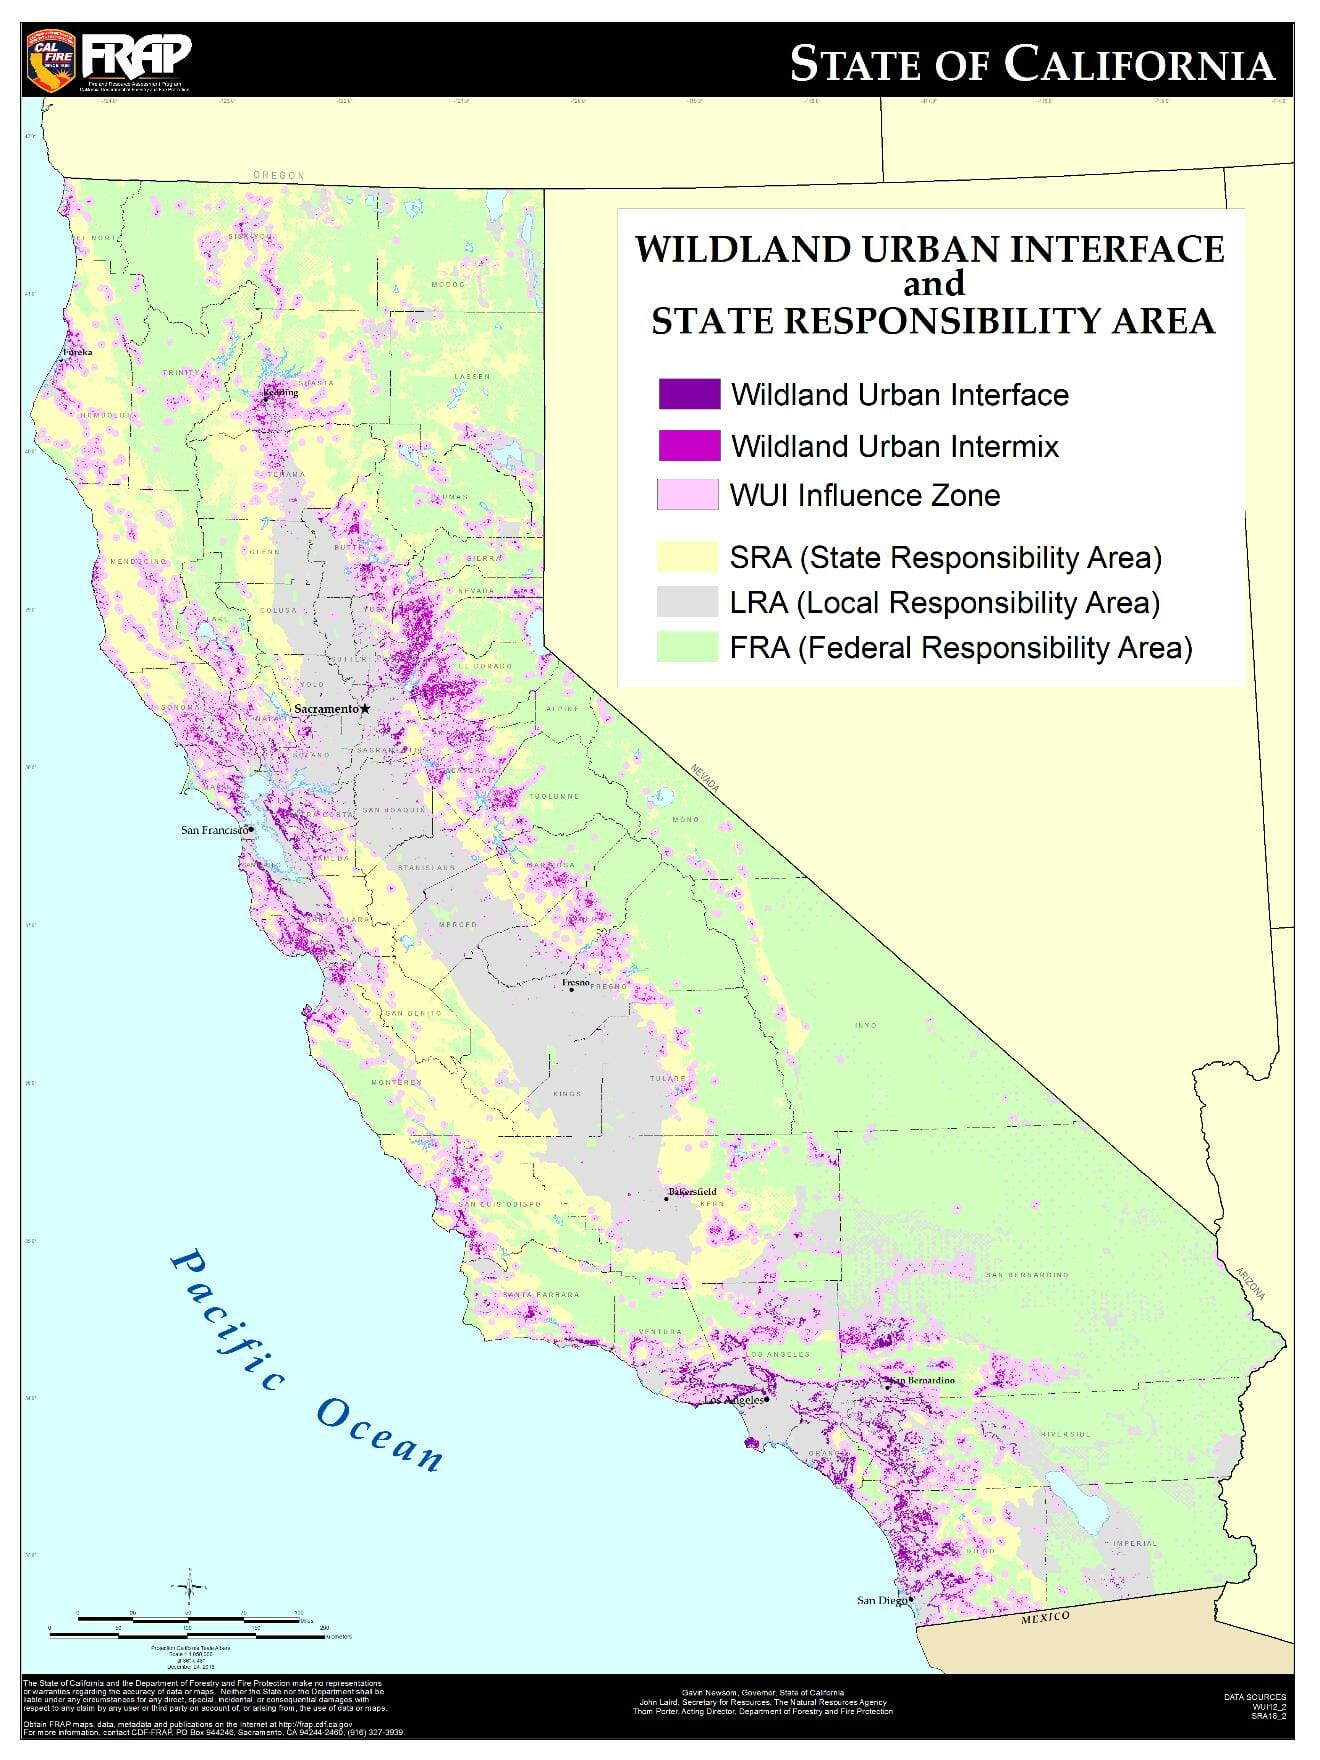 Cal Fire Submits Report On Protecting Vulnerable Communities From - California Fire Zone Map